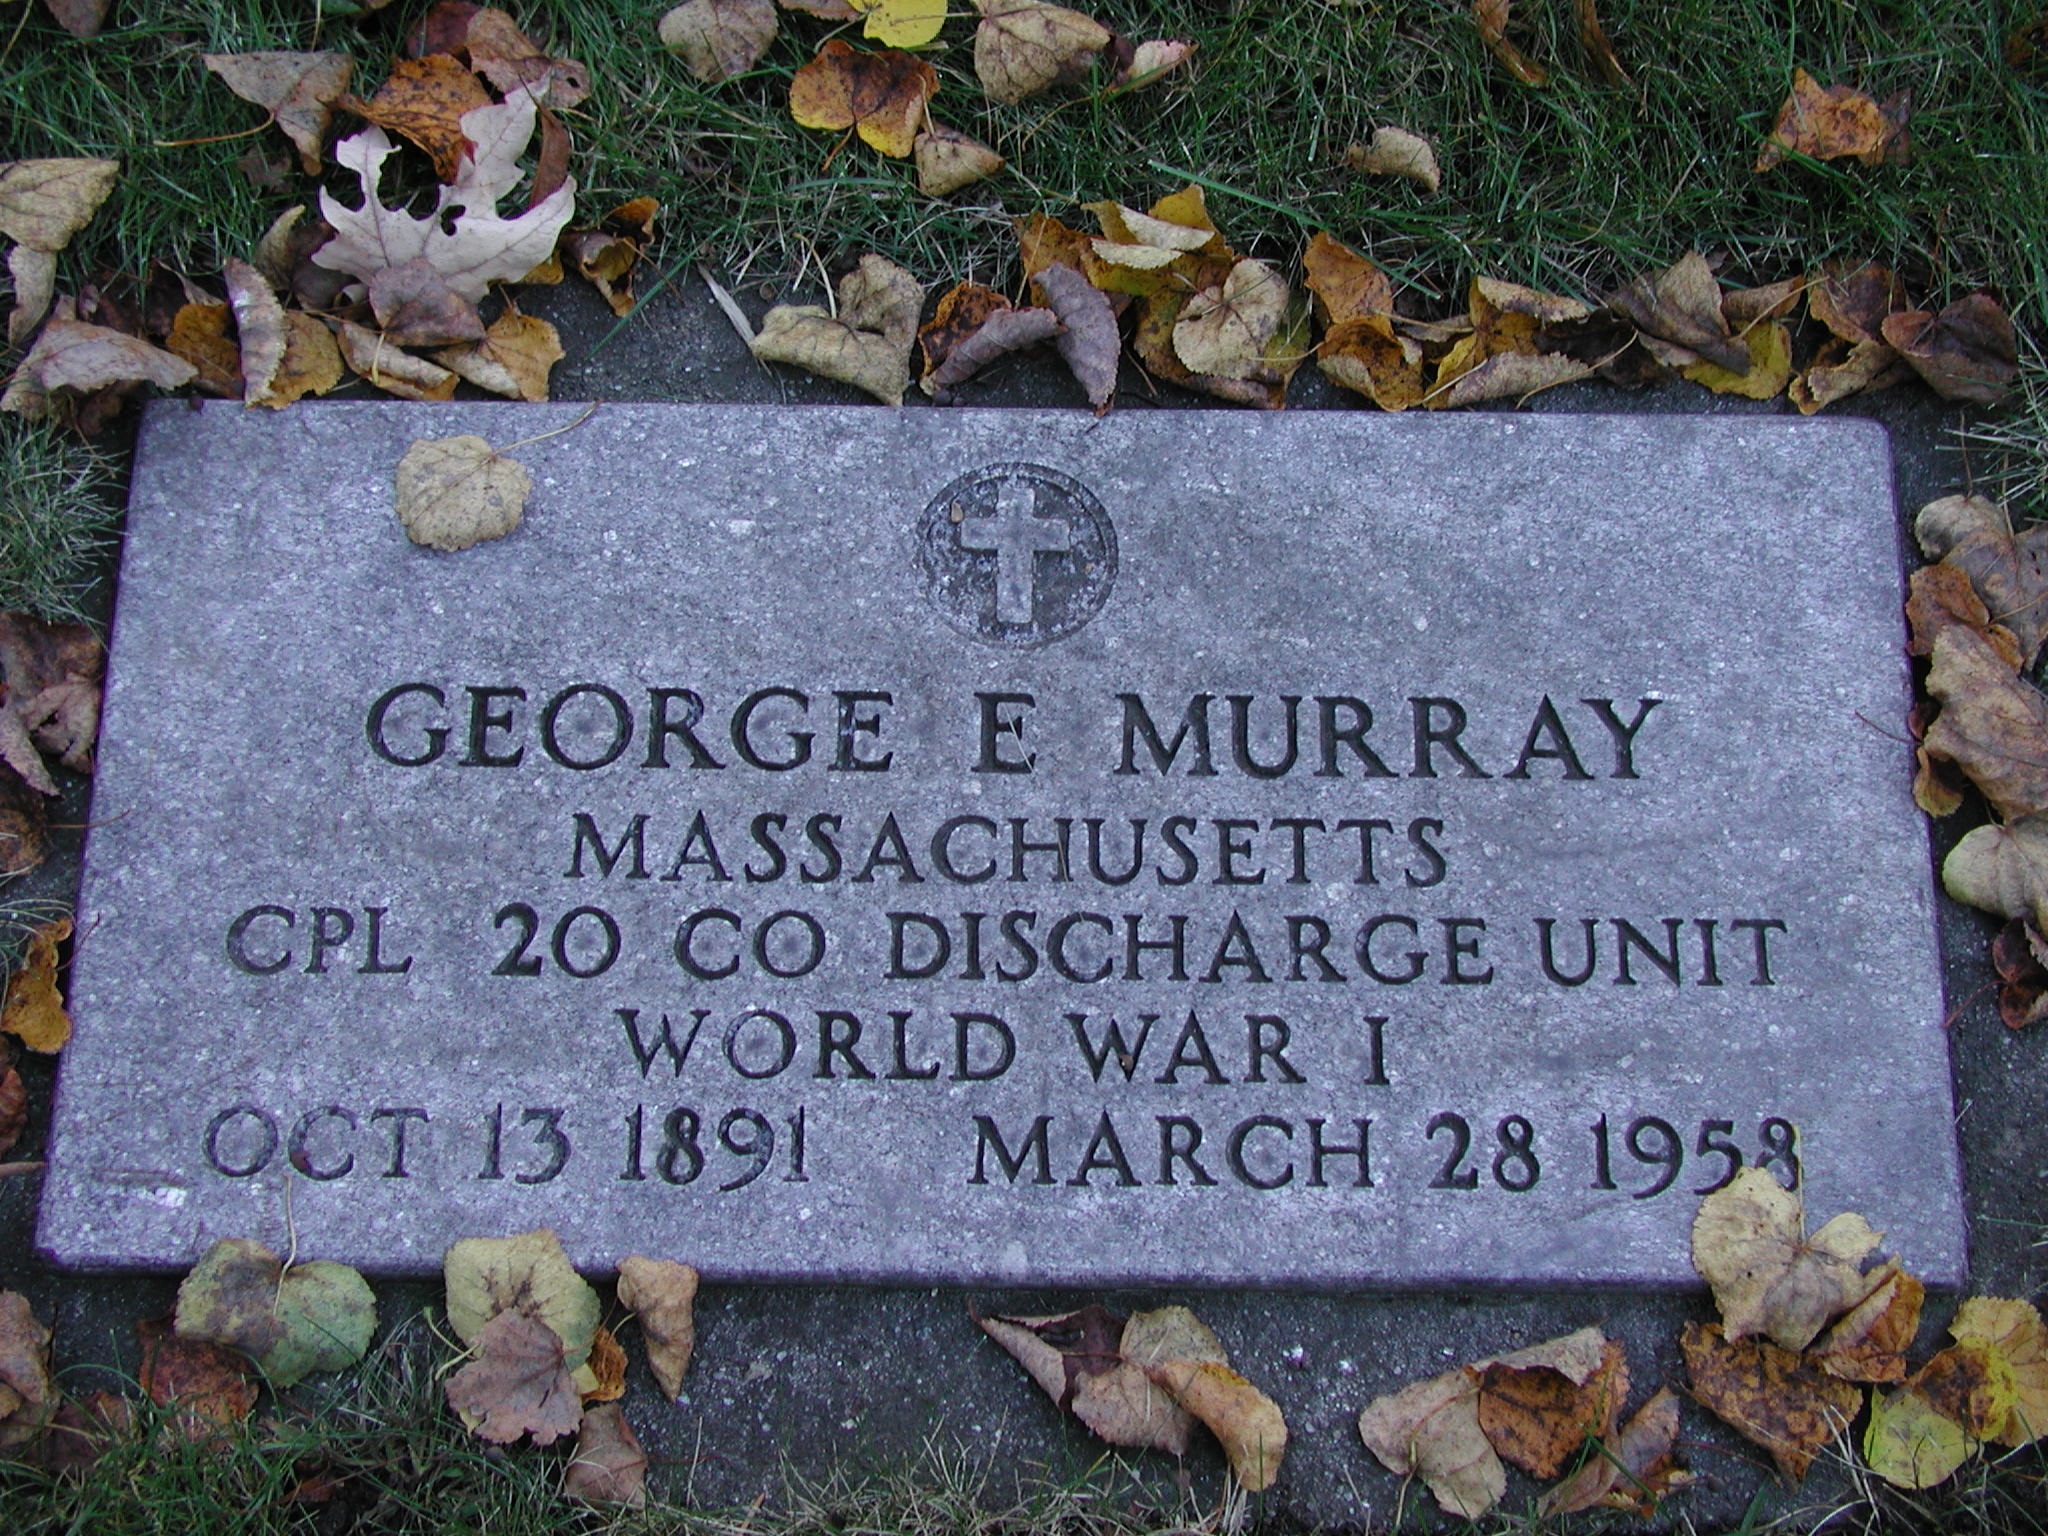 George E. Murray